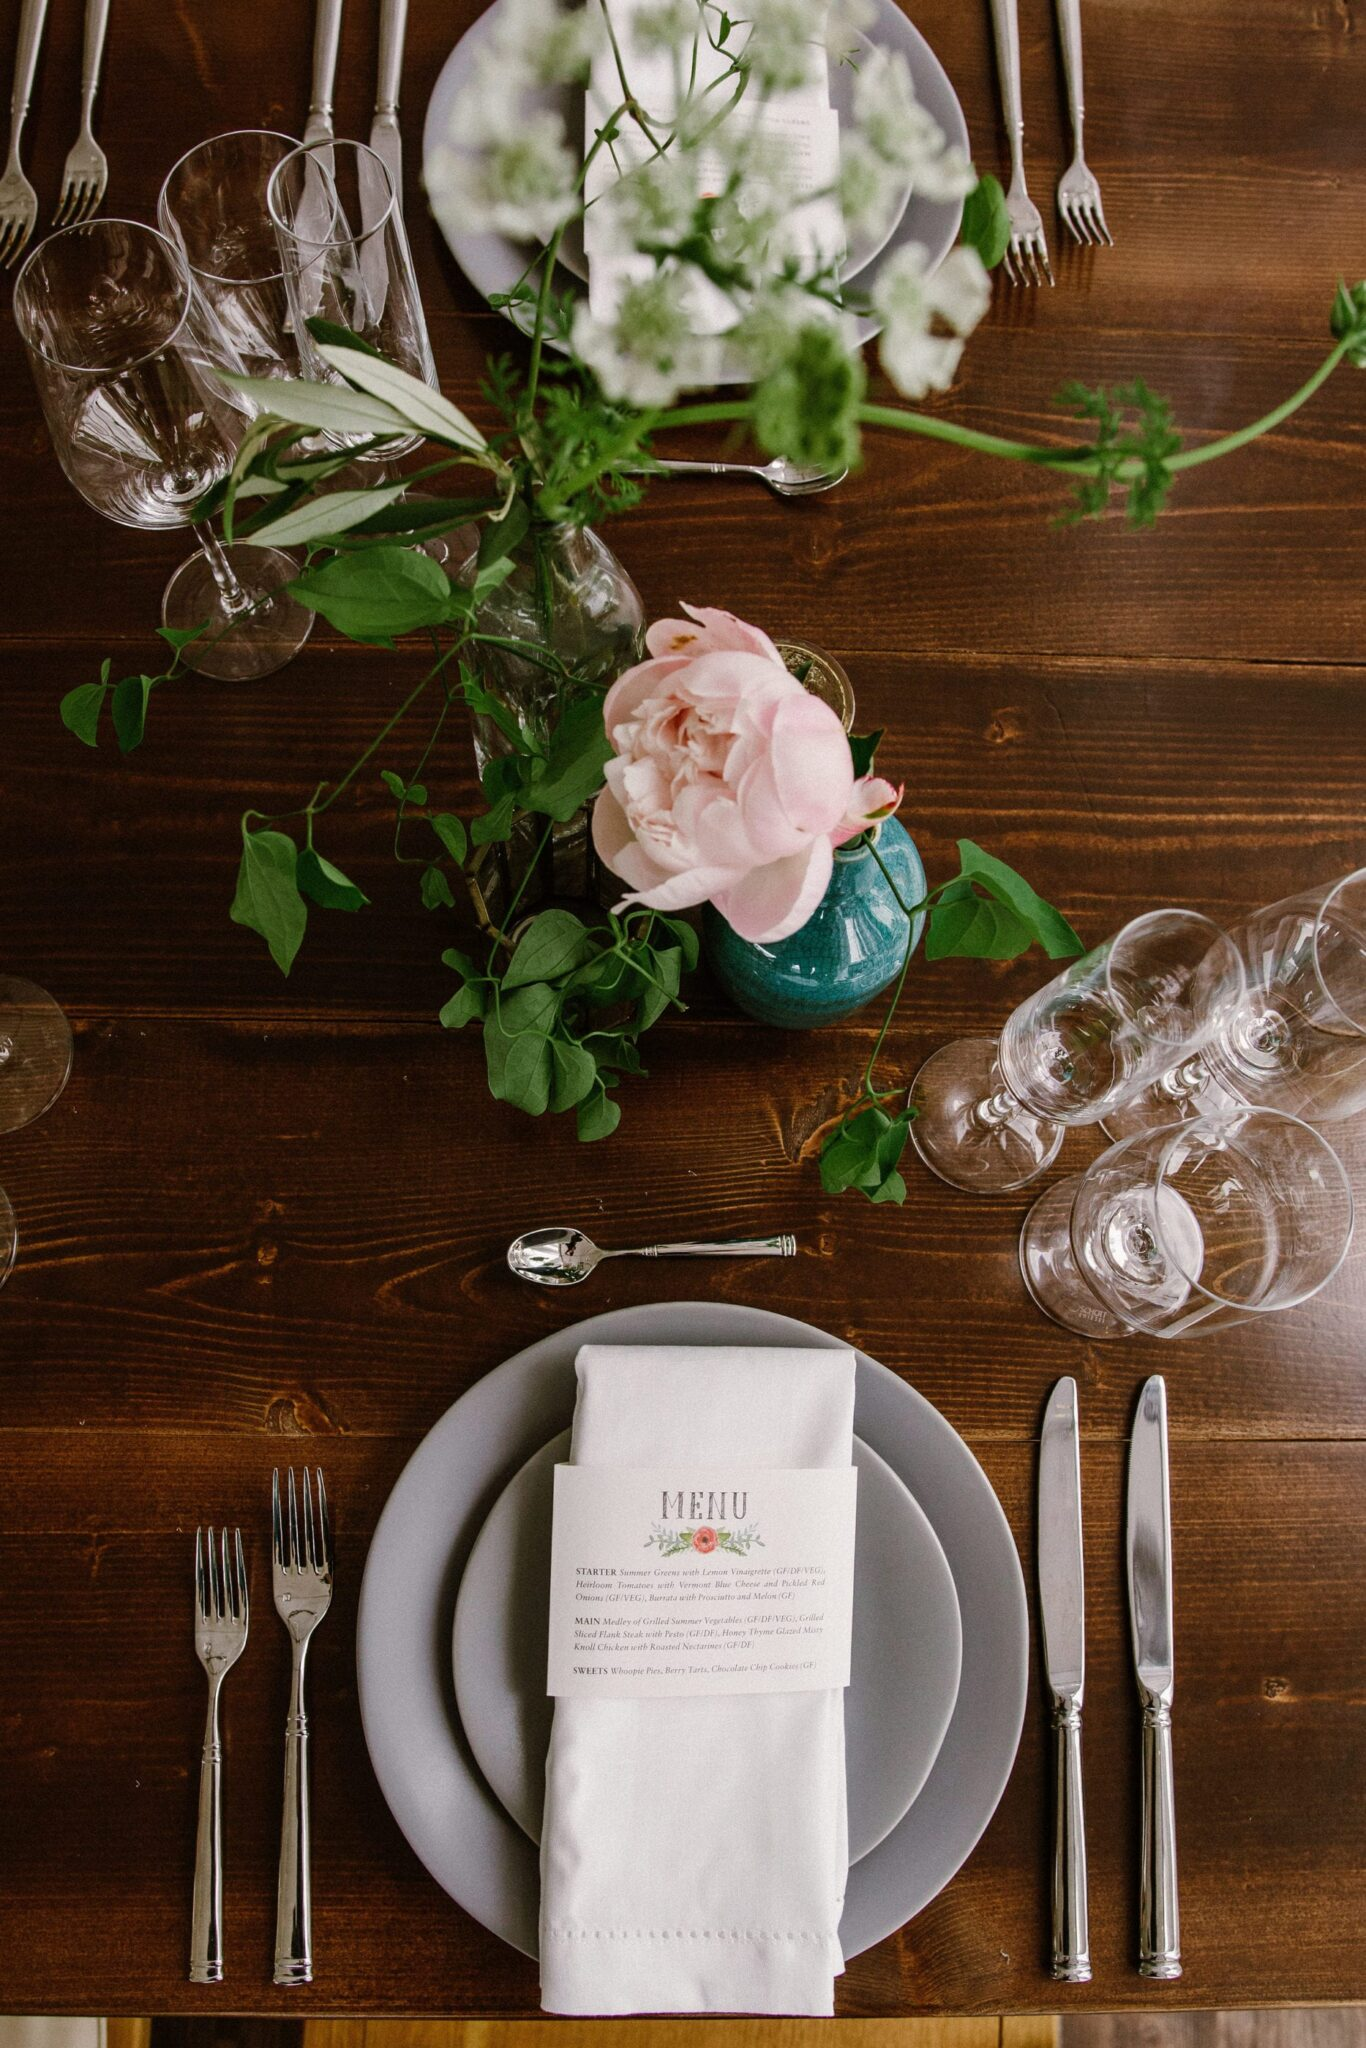 A Starry Night in New England Luxury Wedding farm to table grey plated dinner